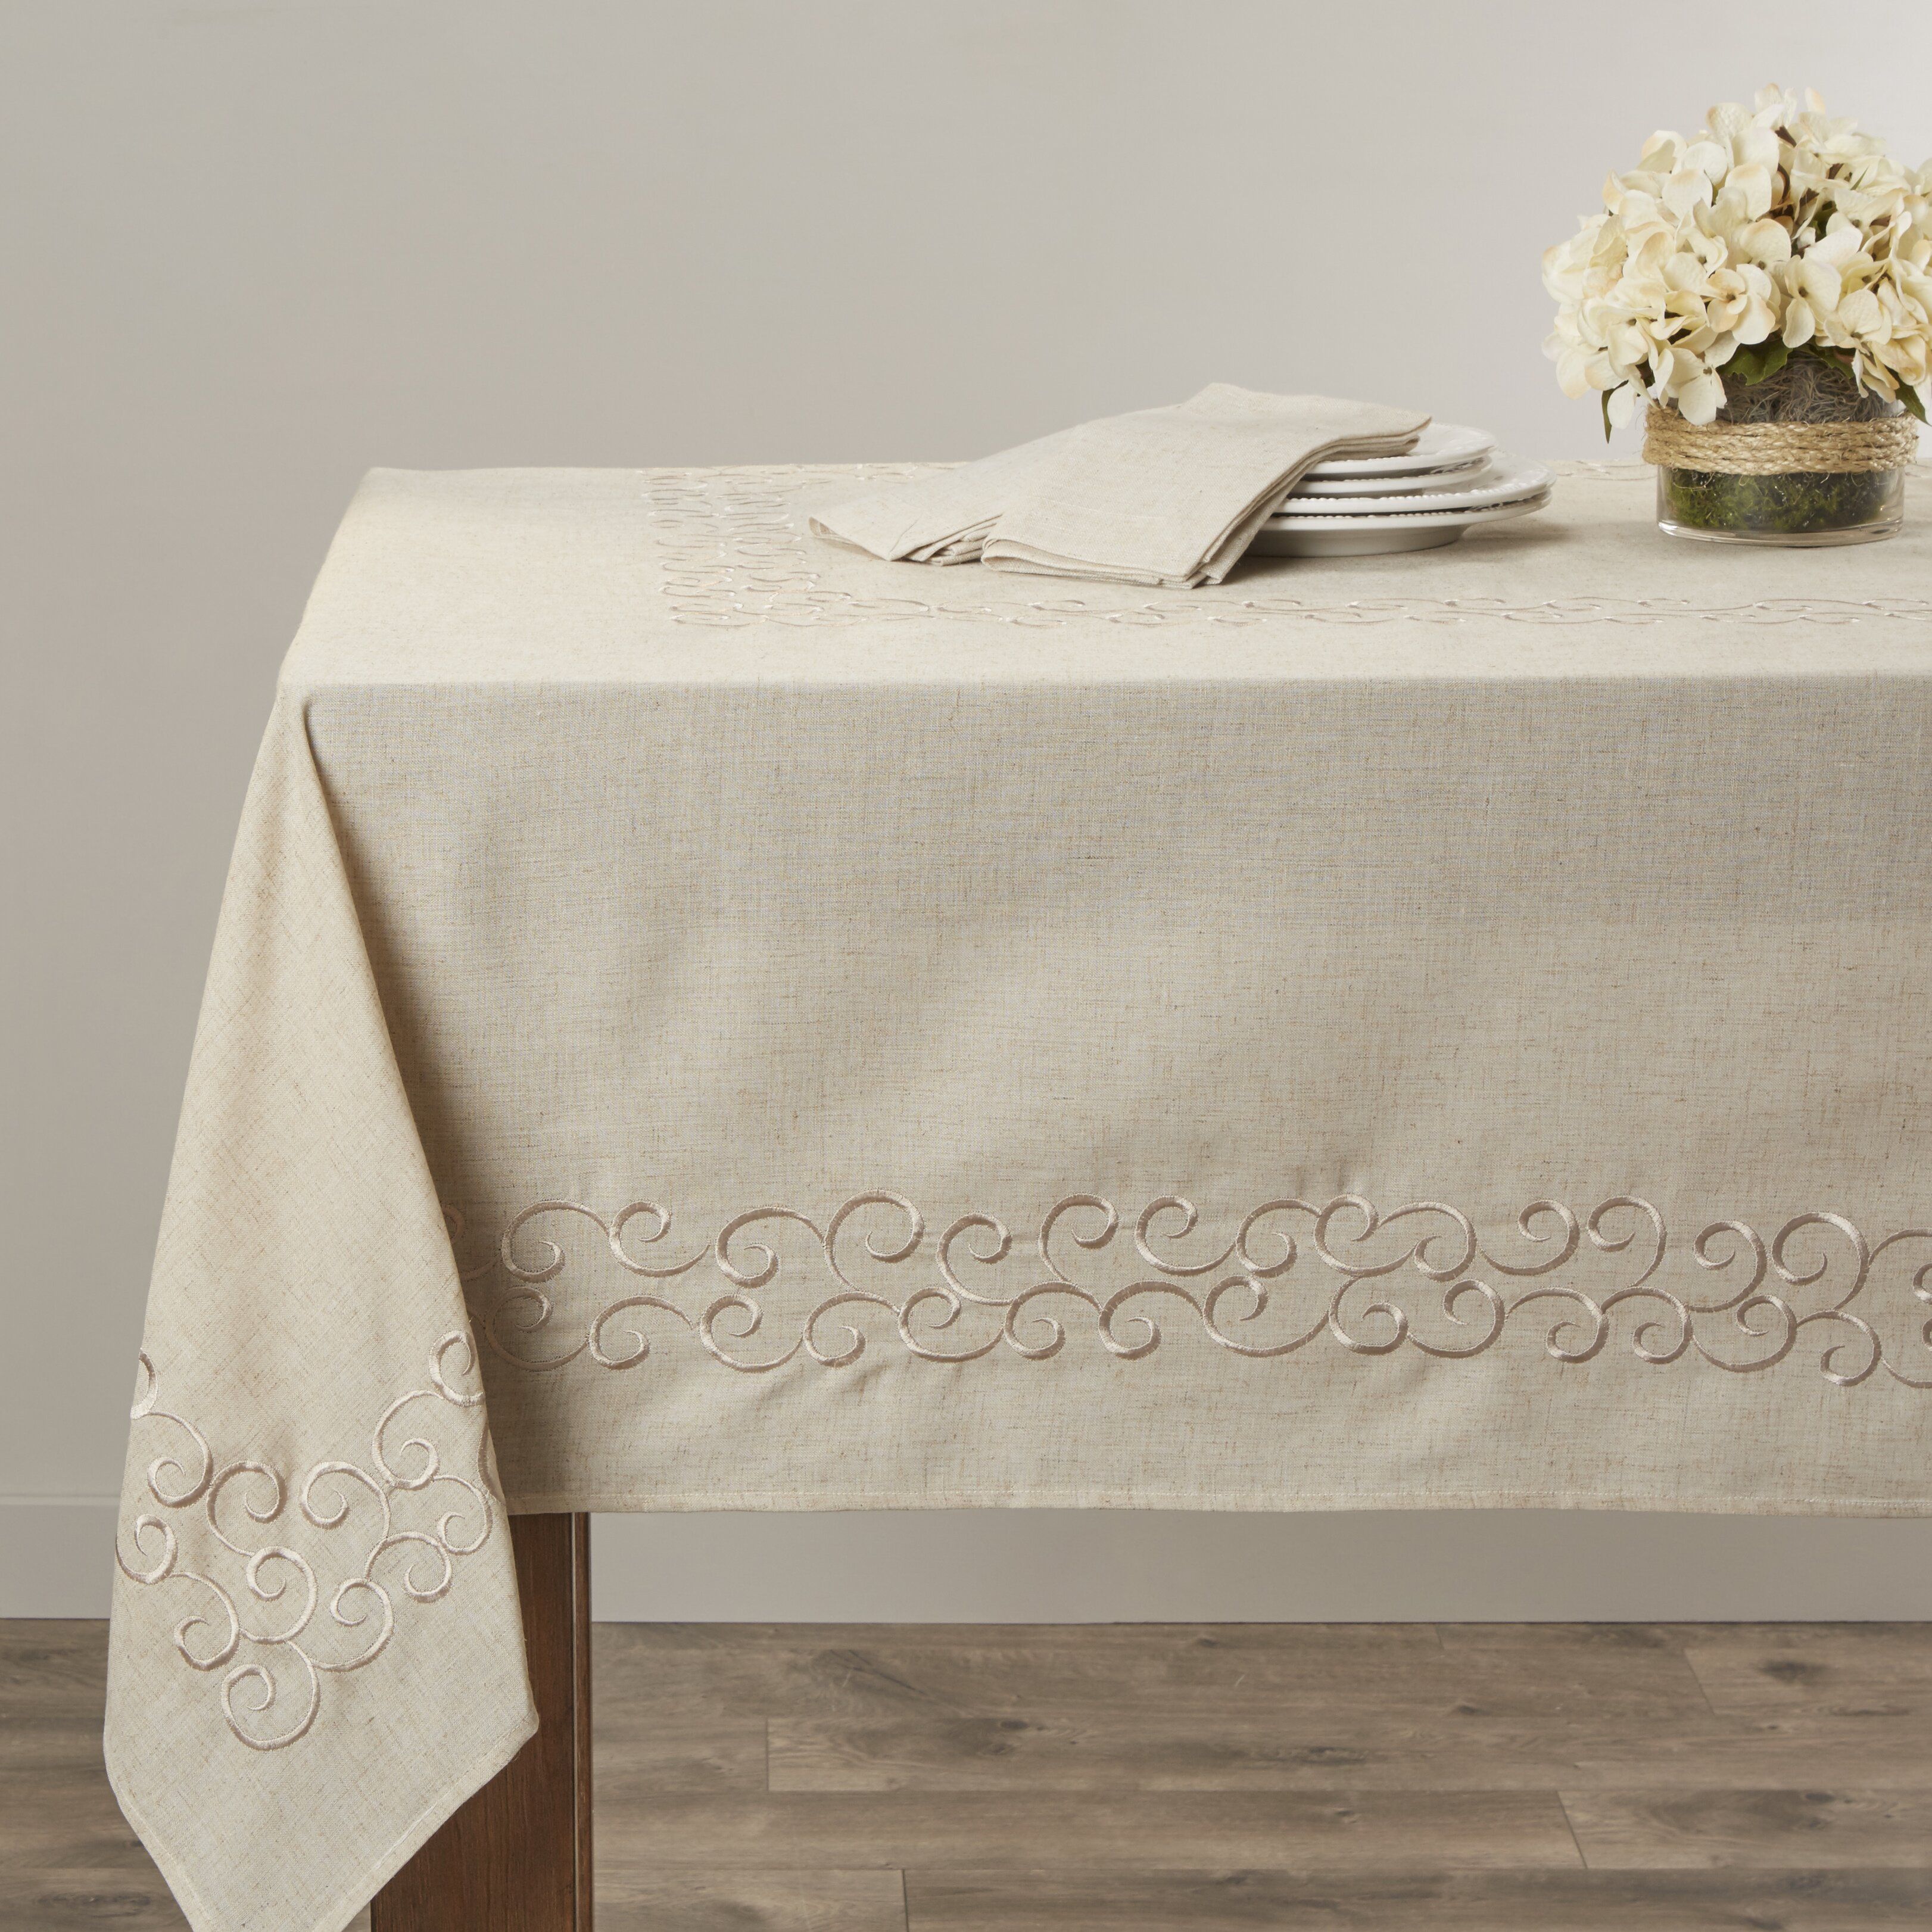 Embroidered Scroll Design Tablecloth Wayfair